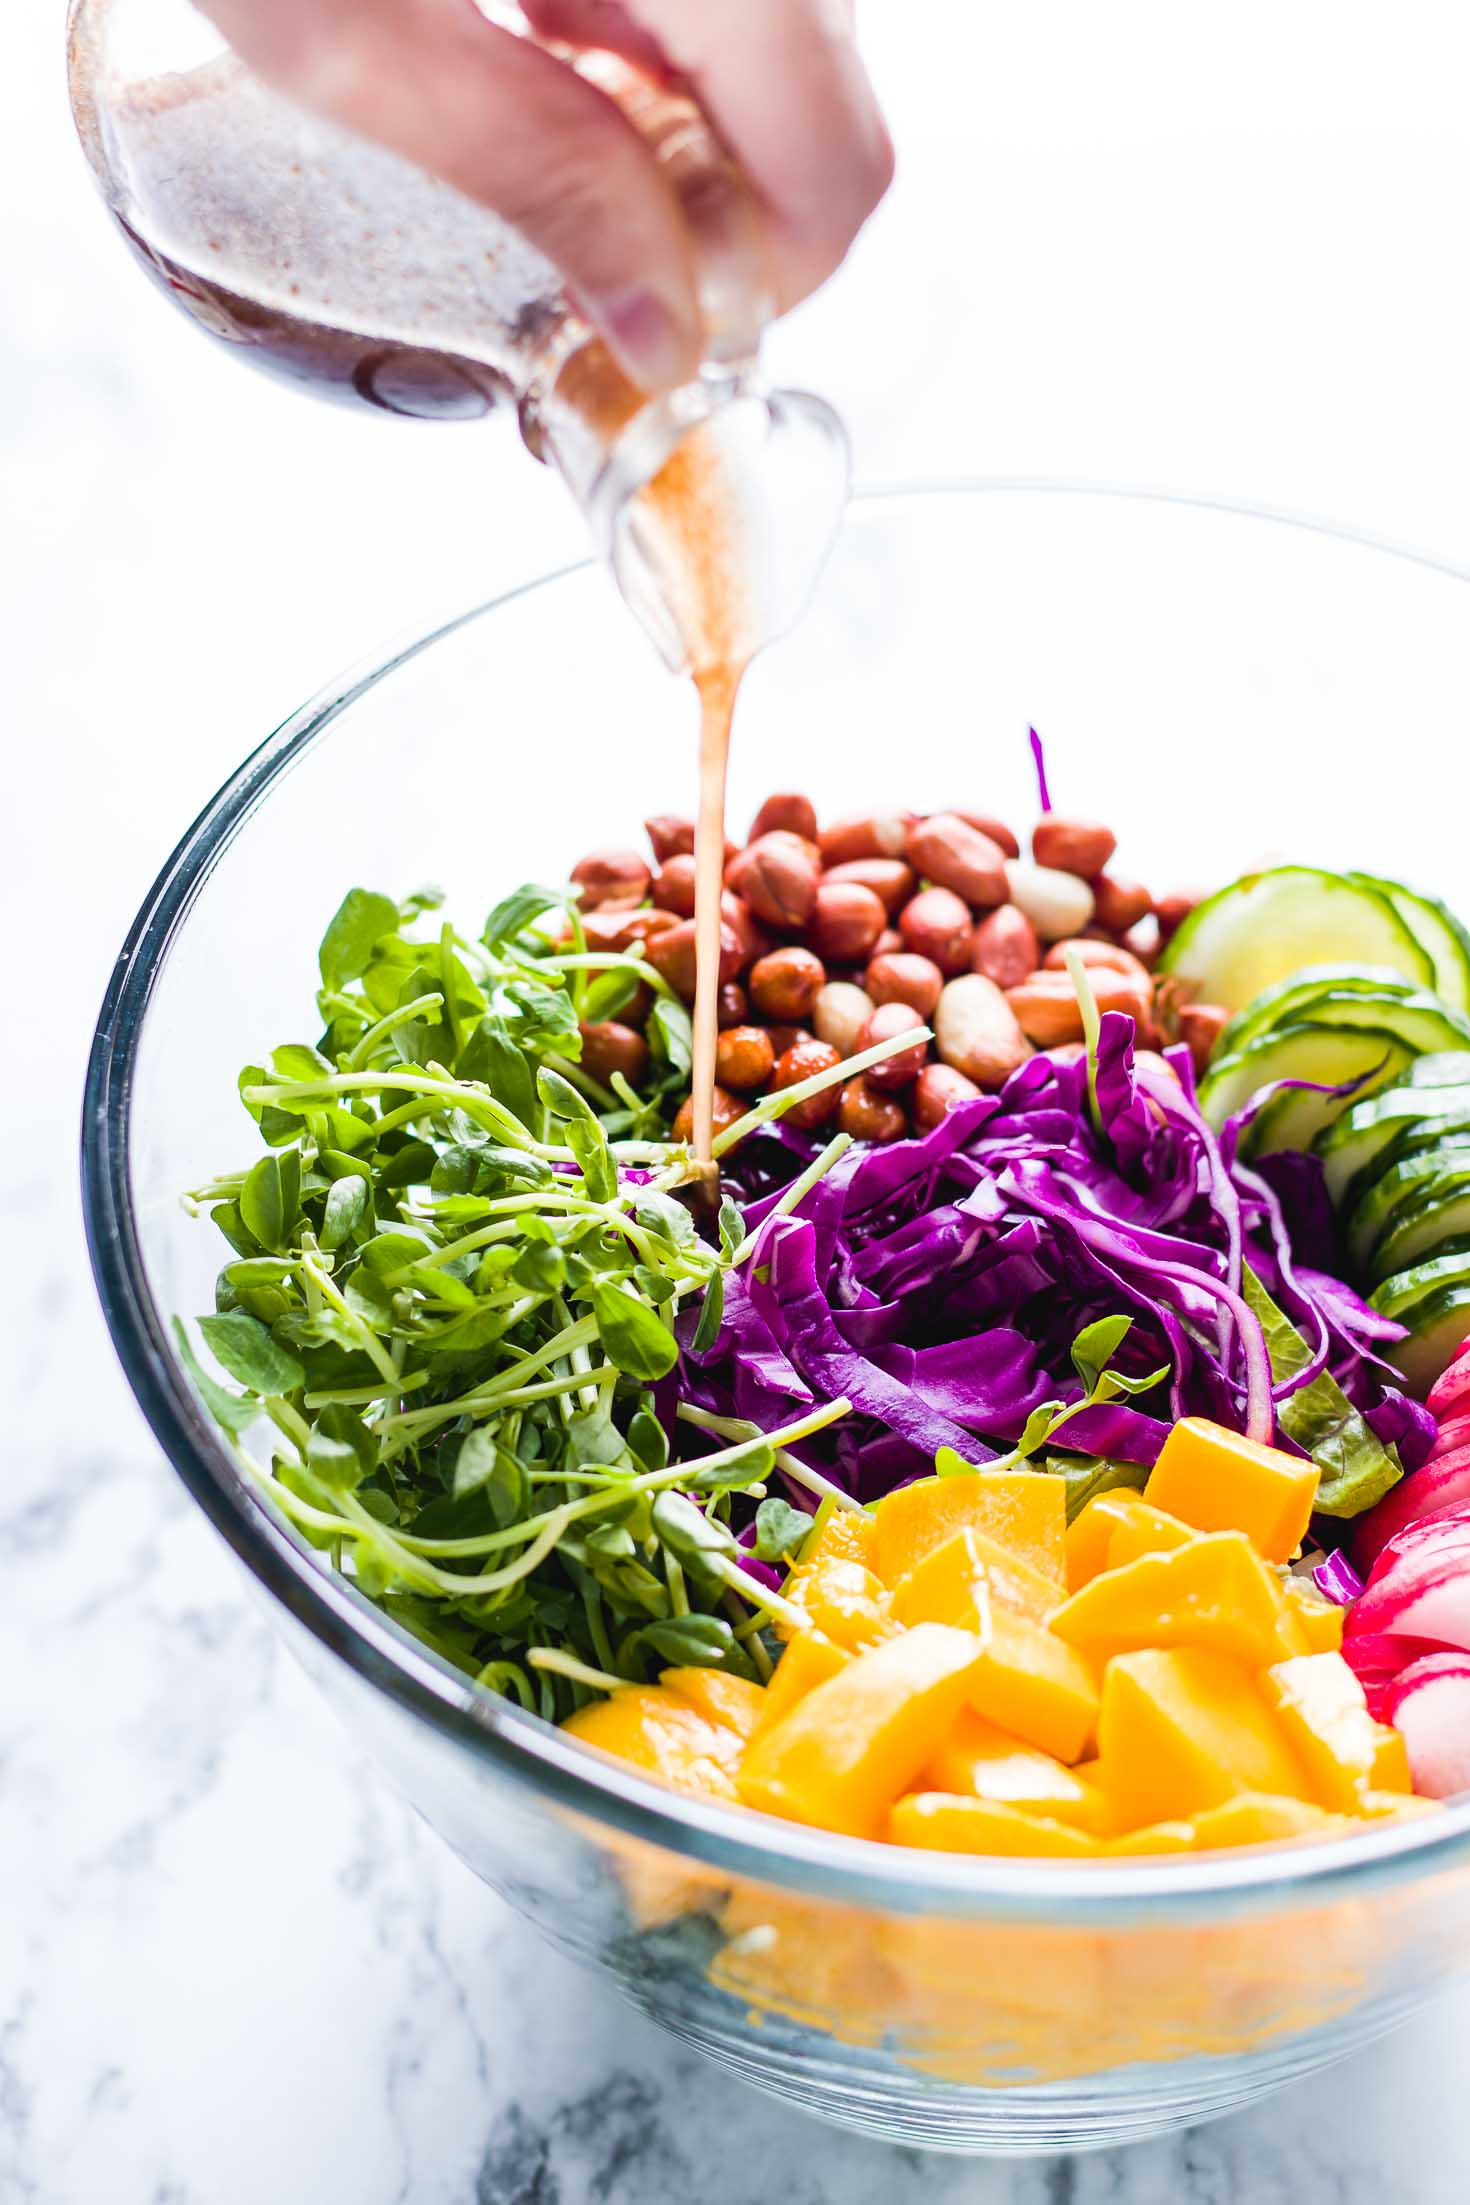 Pea Shoots Mango Rainbow Salad-all ingredients in a glass bowl before mixing them together. Salad is served with balsamic vinaigrette.